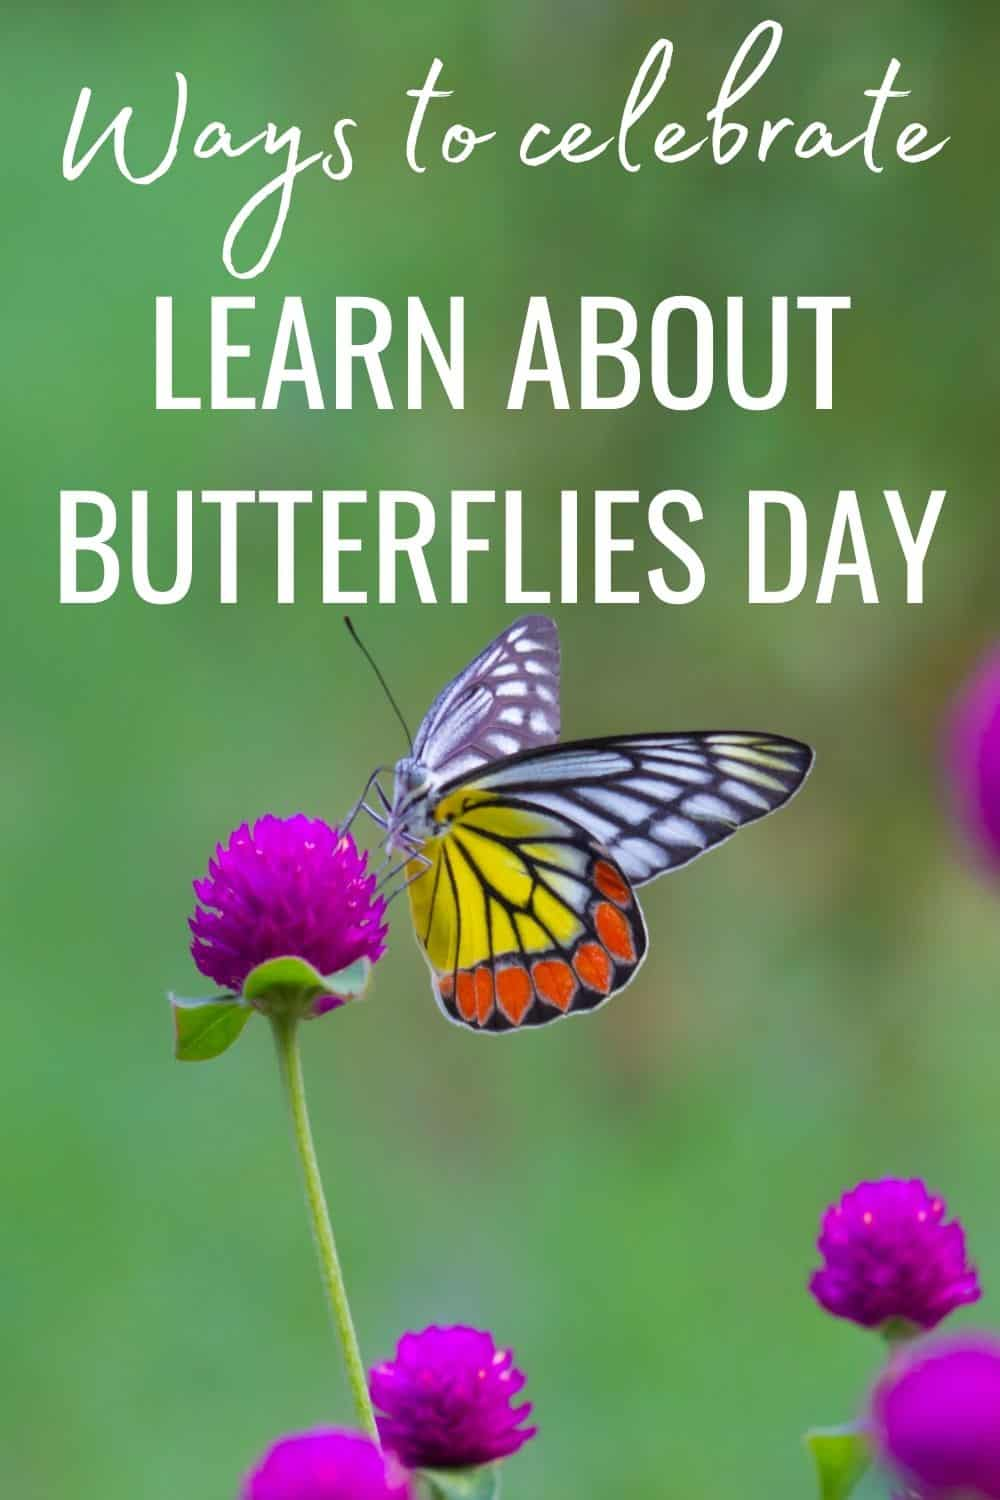 Ways to celebrate learn about butterflies day